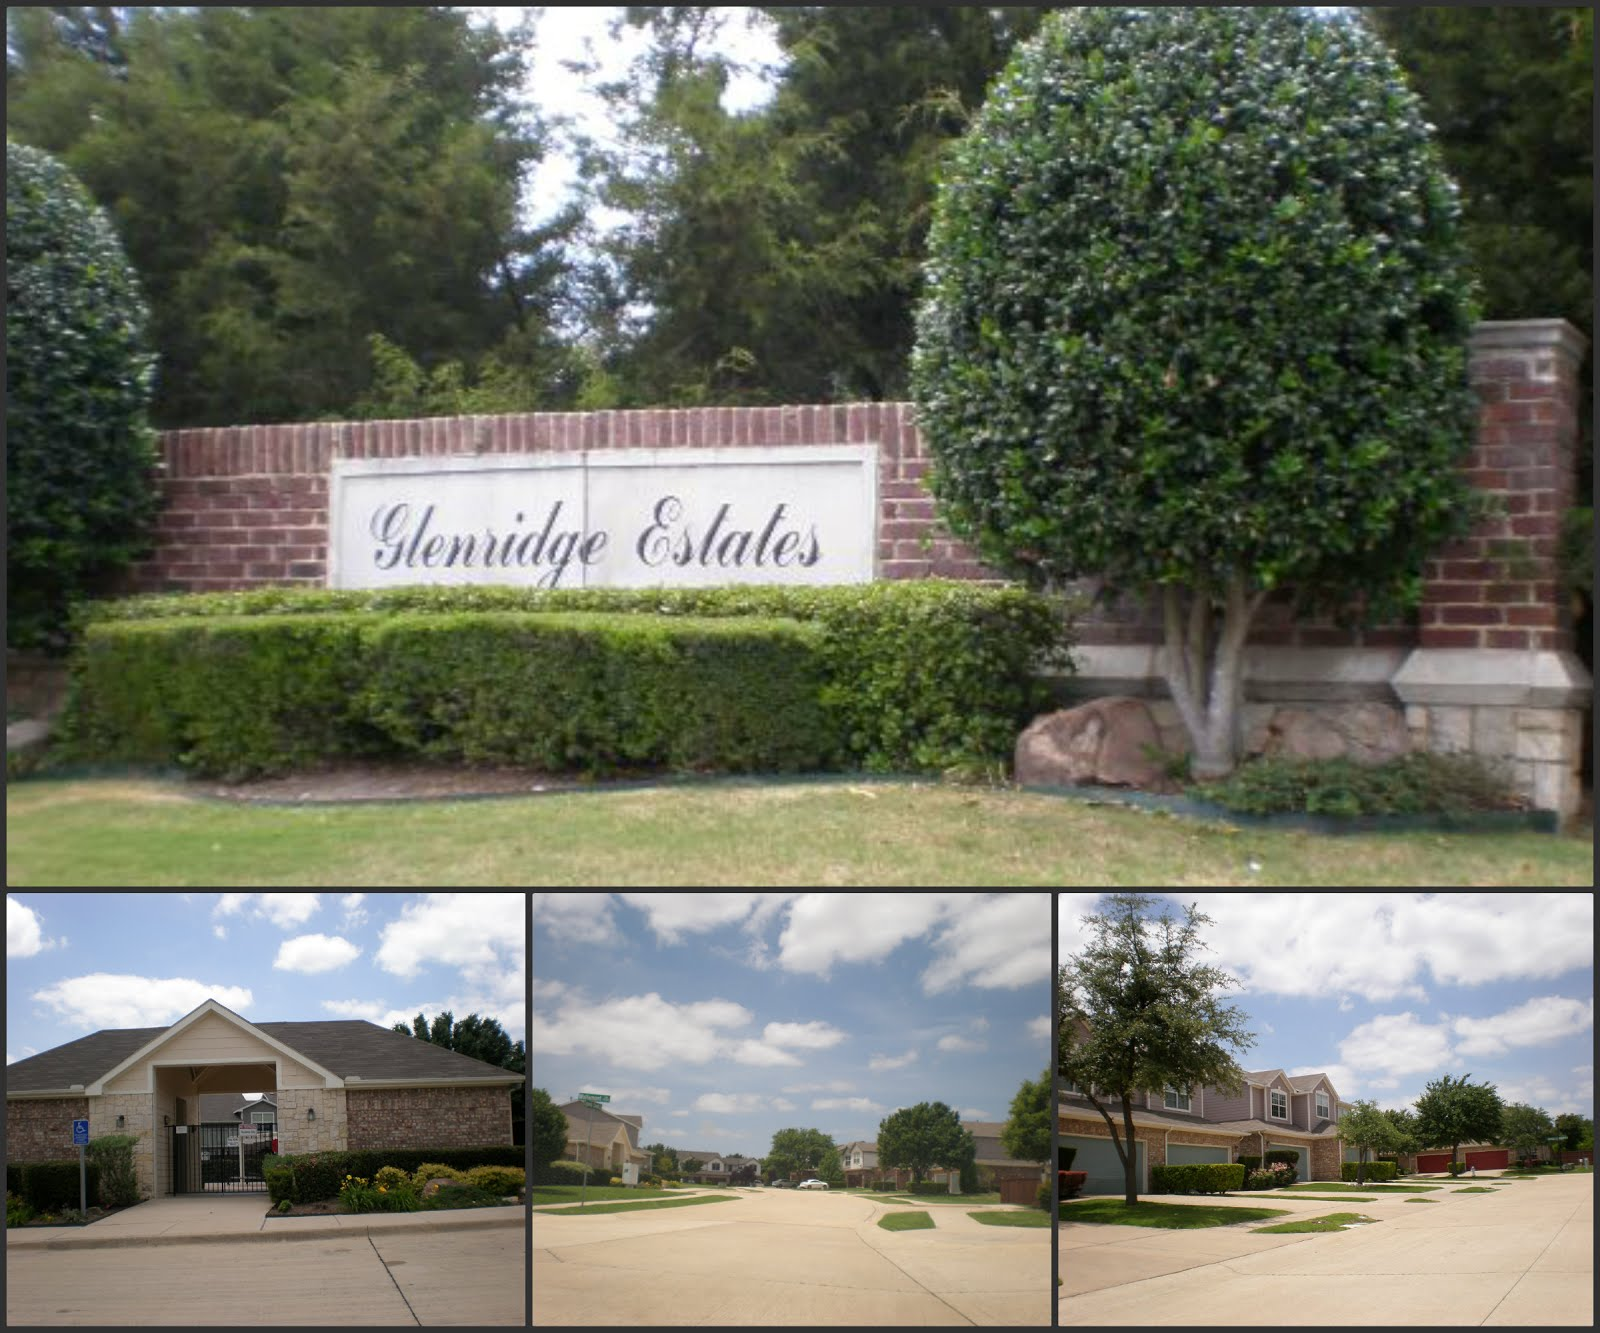 glenridge estates collage.jpg